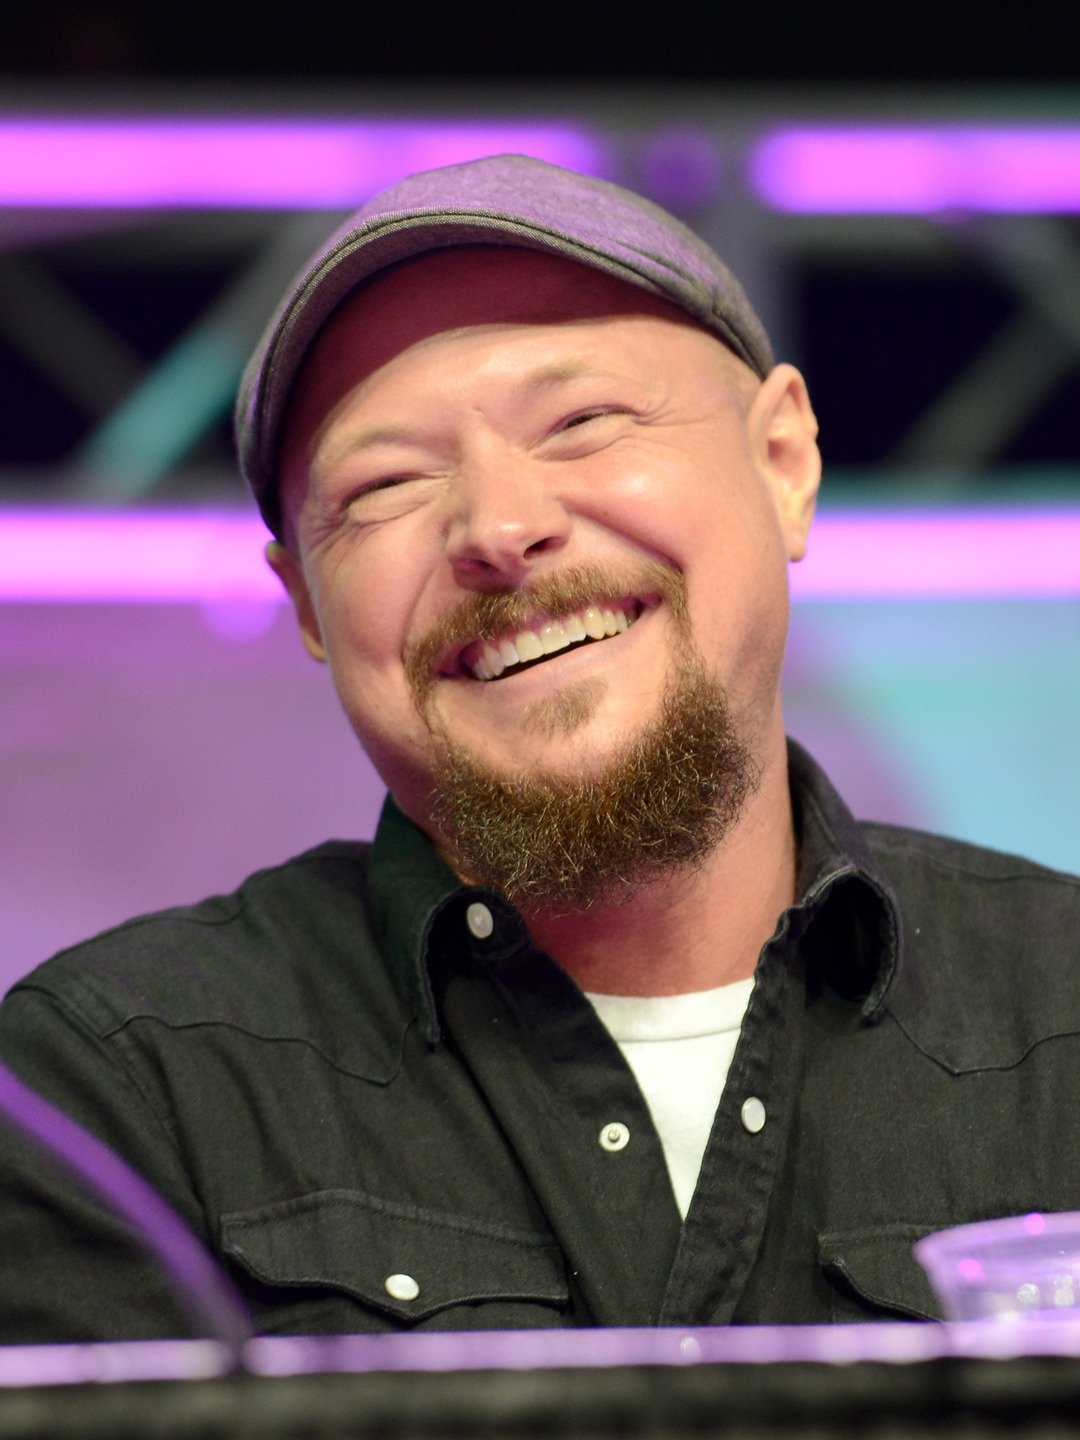 Nate Richert Bio Wiki Age Wife Movies Net Worth Sabrina And Tv Shows He is an actor, known for обаятельная и. https informationcradle com nate richert